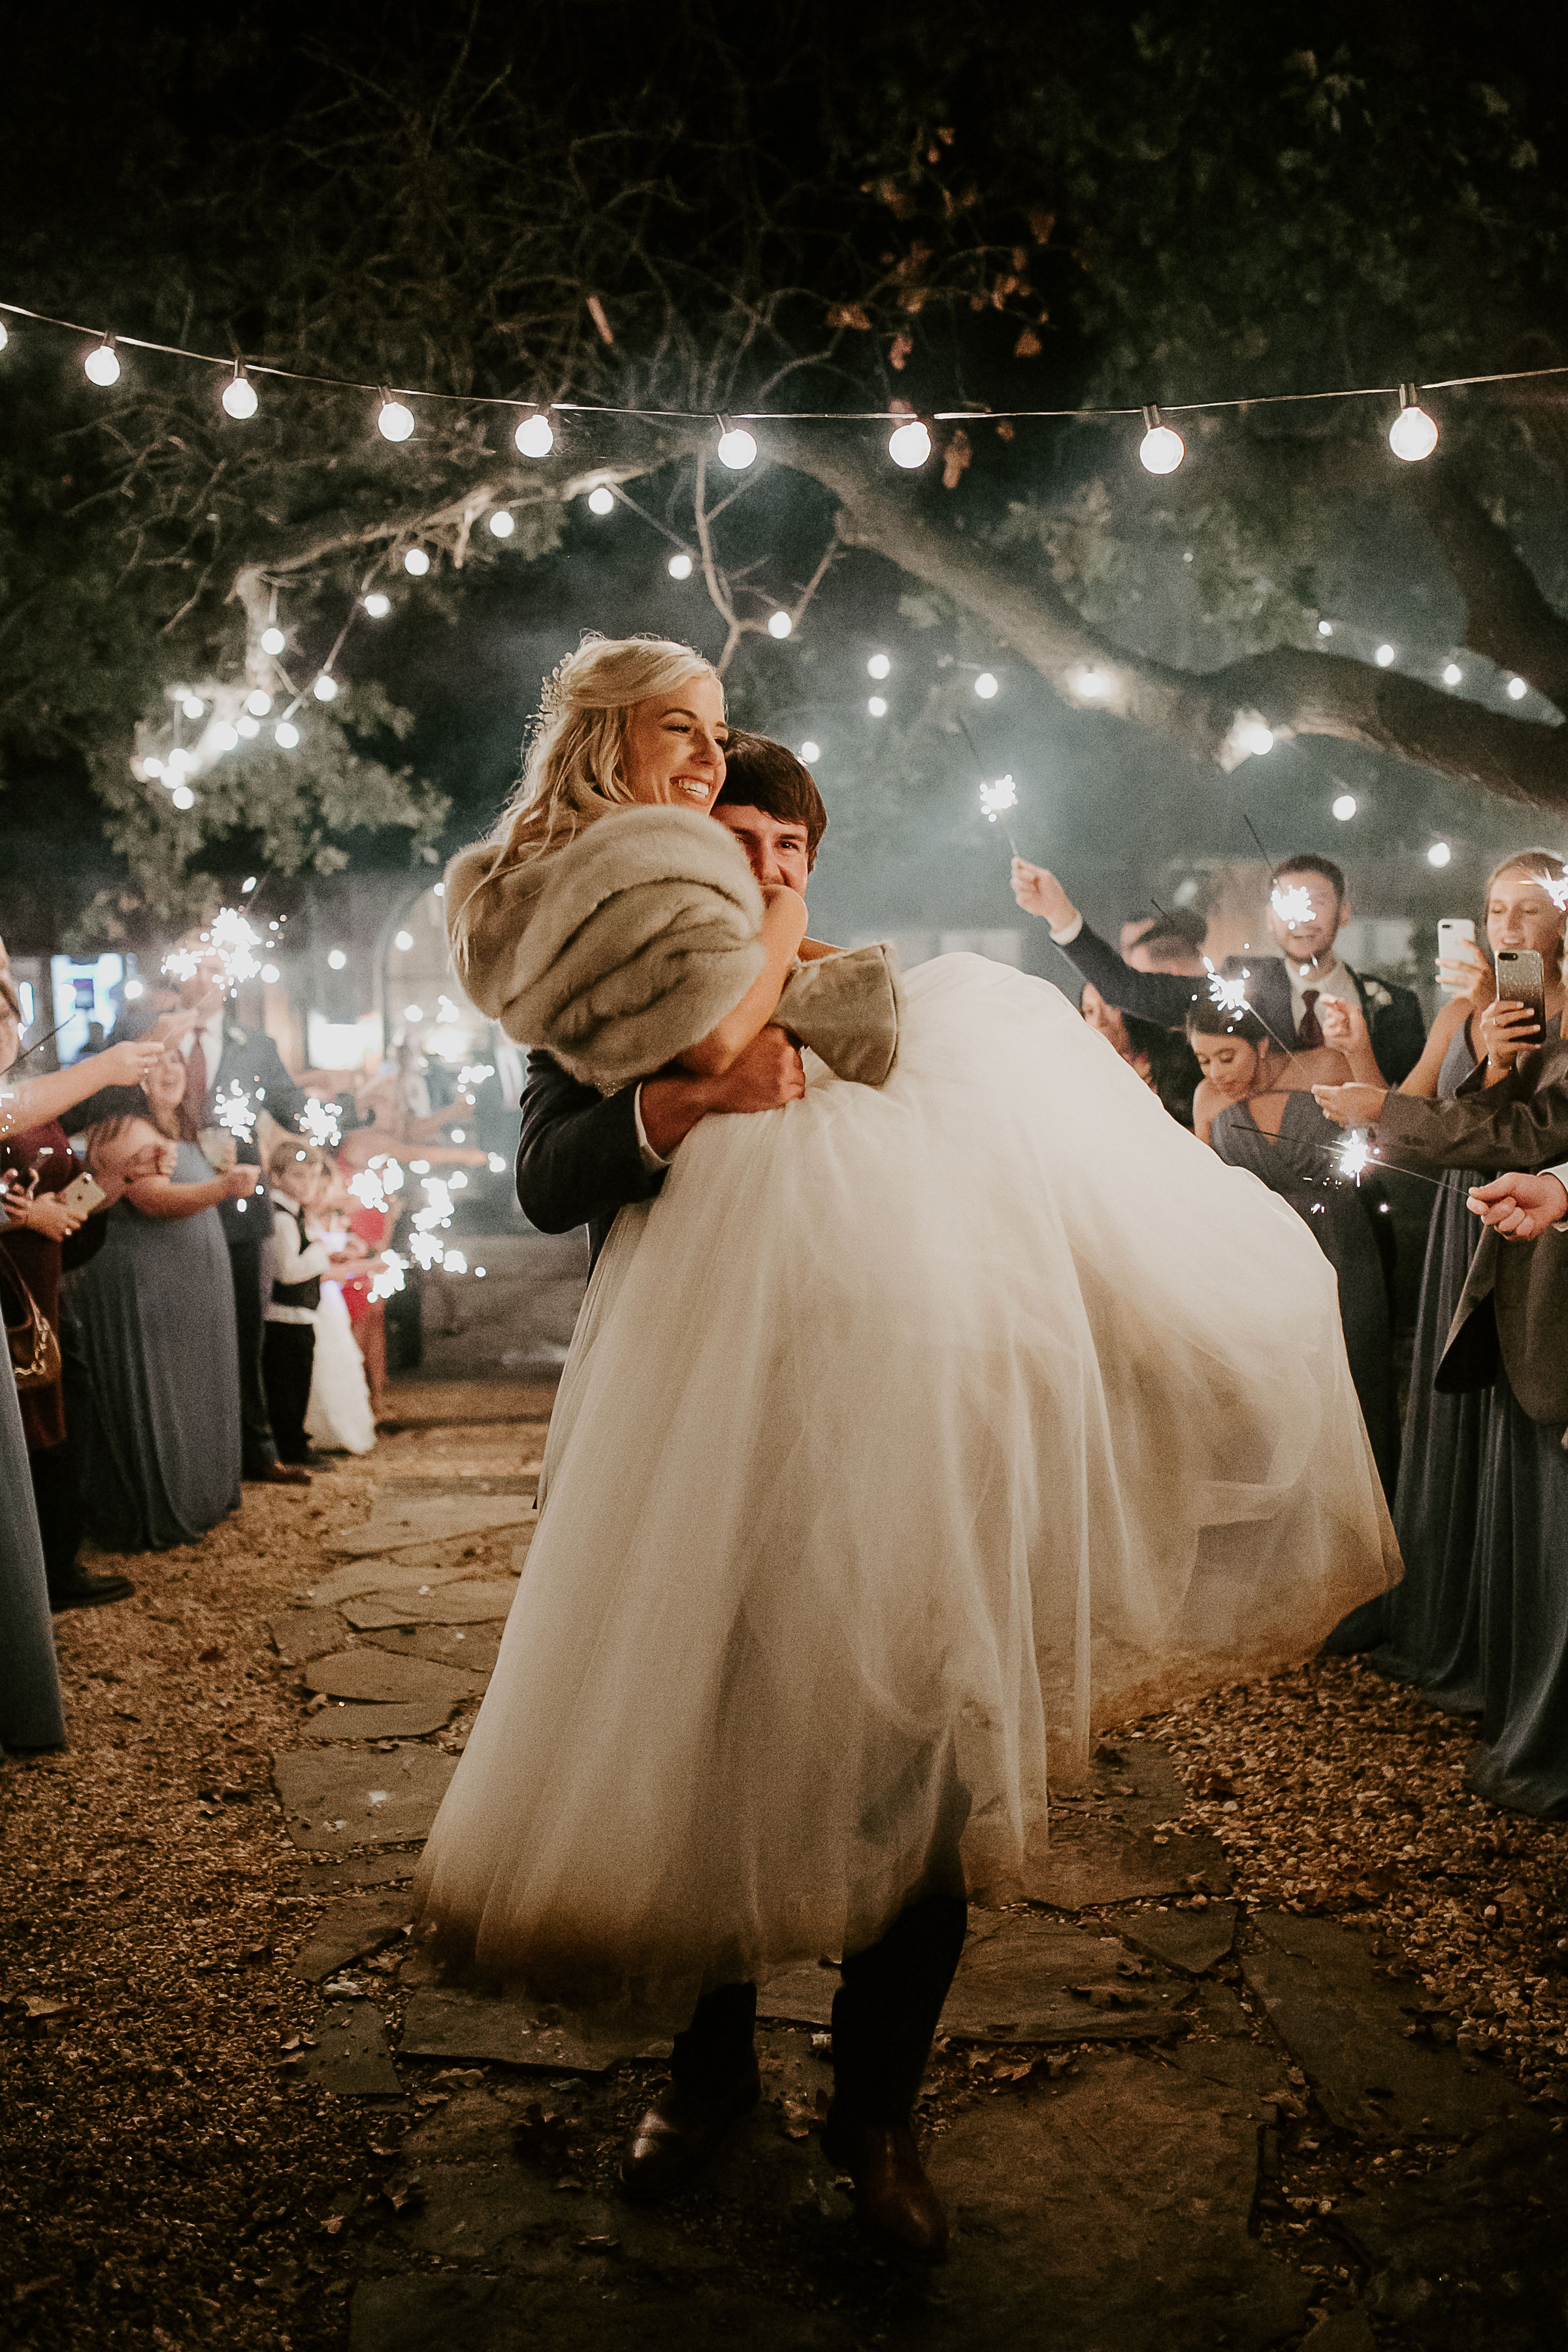 15 Cost-Free Ideas for an Unforgettable Wedding Reception - Photo by Amanda ScottBy Chasen ShawChasen is a certified Wedding Entertainment Director® and the owner of PartyBox. He and his wife Leslee Layton are the founders of Let's Revel.